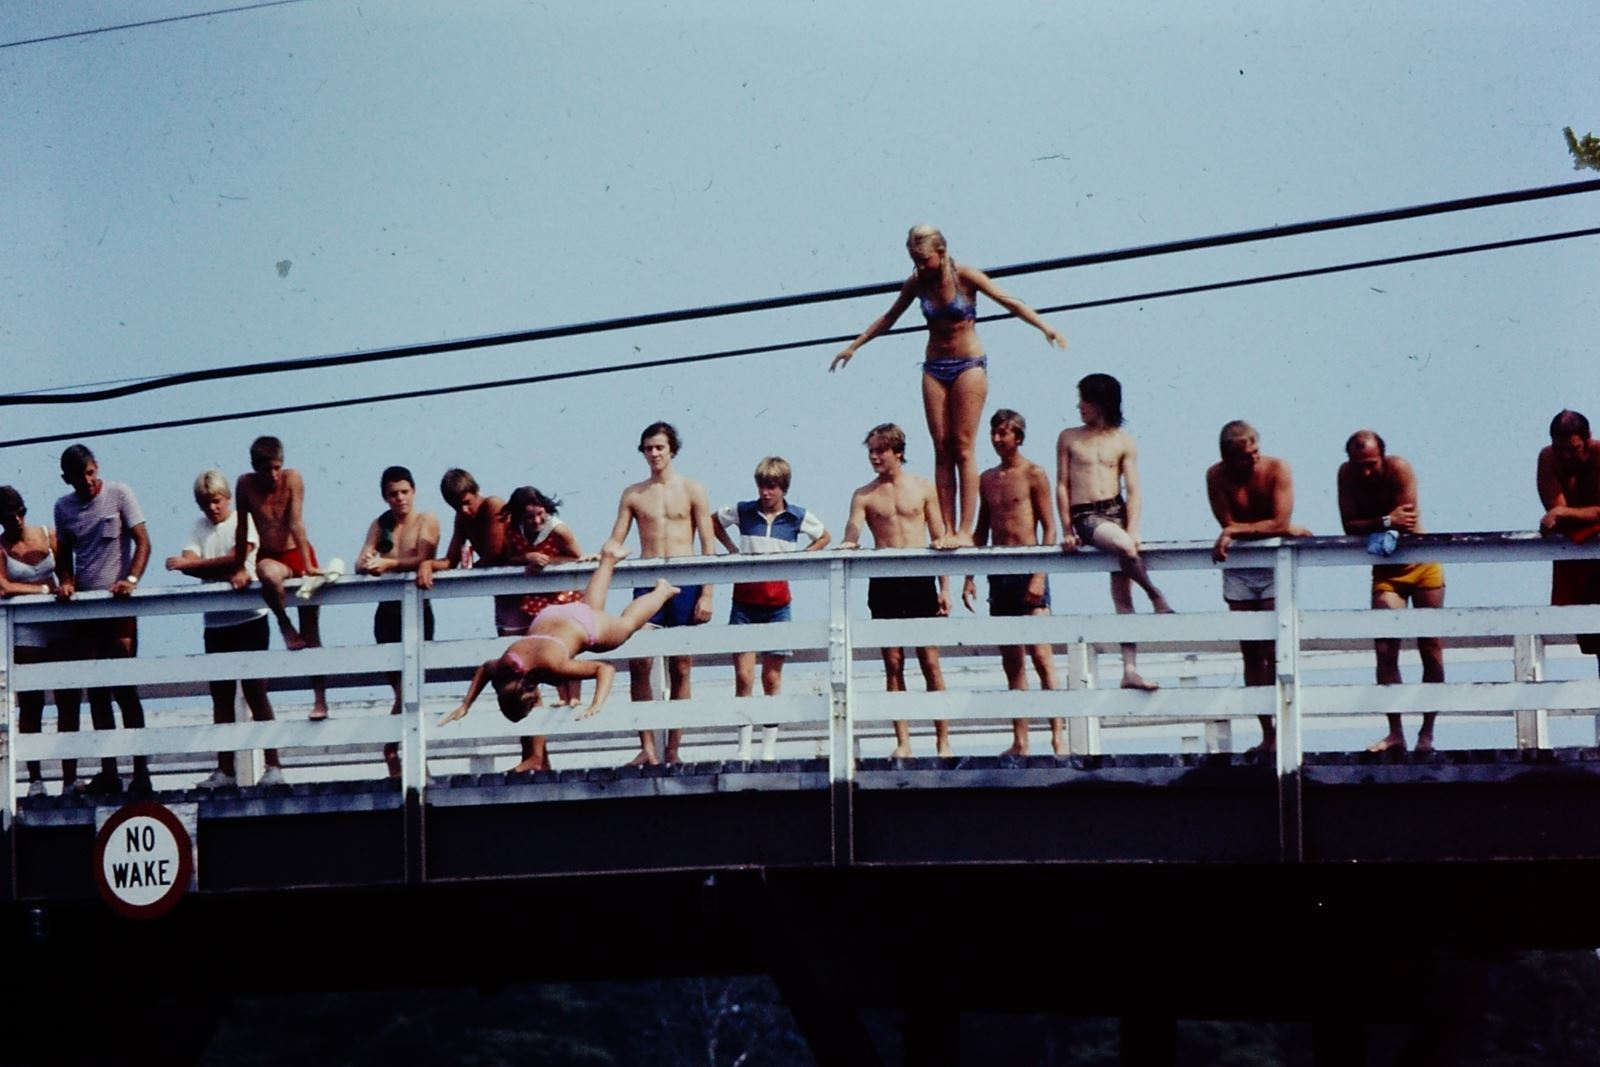 A photo of children and teenagers lined up along the side of a bridge, one girl in a swimsuit has jumped off and is diving towards the water, another is standing on the railing waiting her turn.